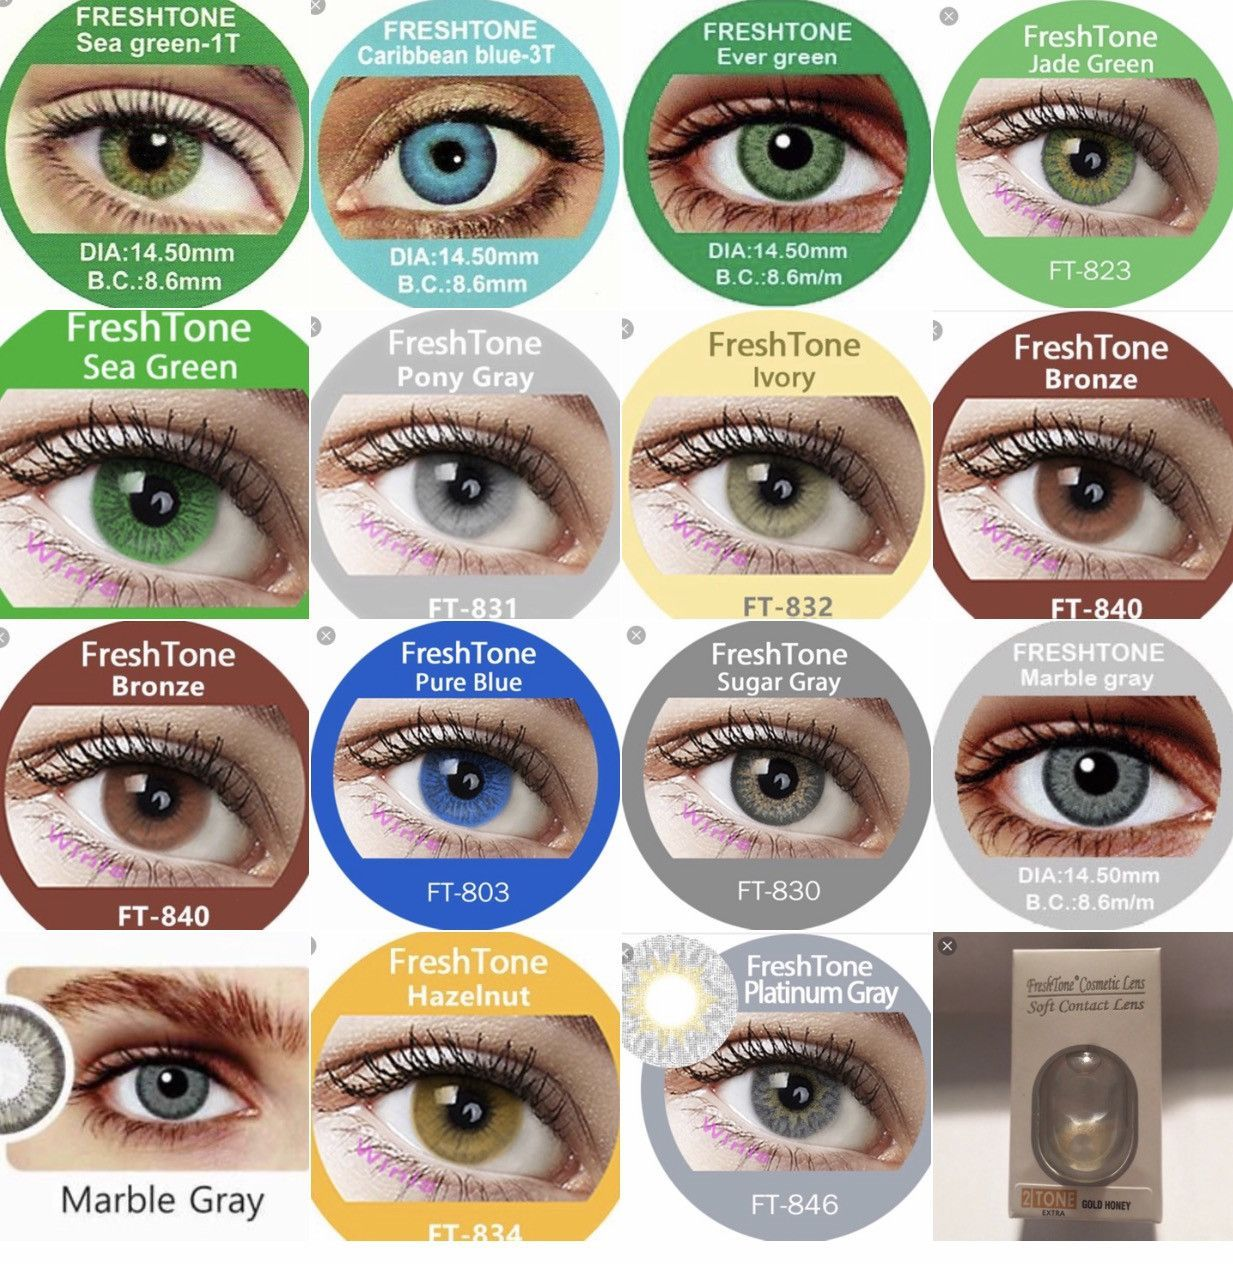 8f86d4aa22 Freshtone new colors and non-prescription contacts. Reusable up to 3 months  with proper care. Please choose the available colors. Free shipping included